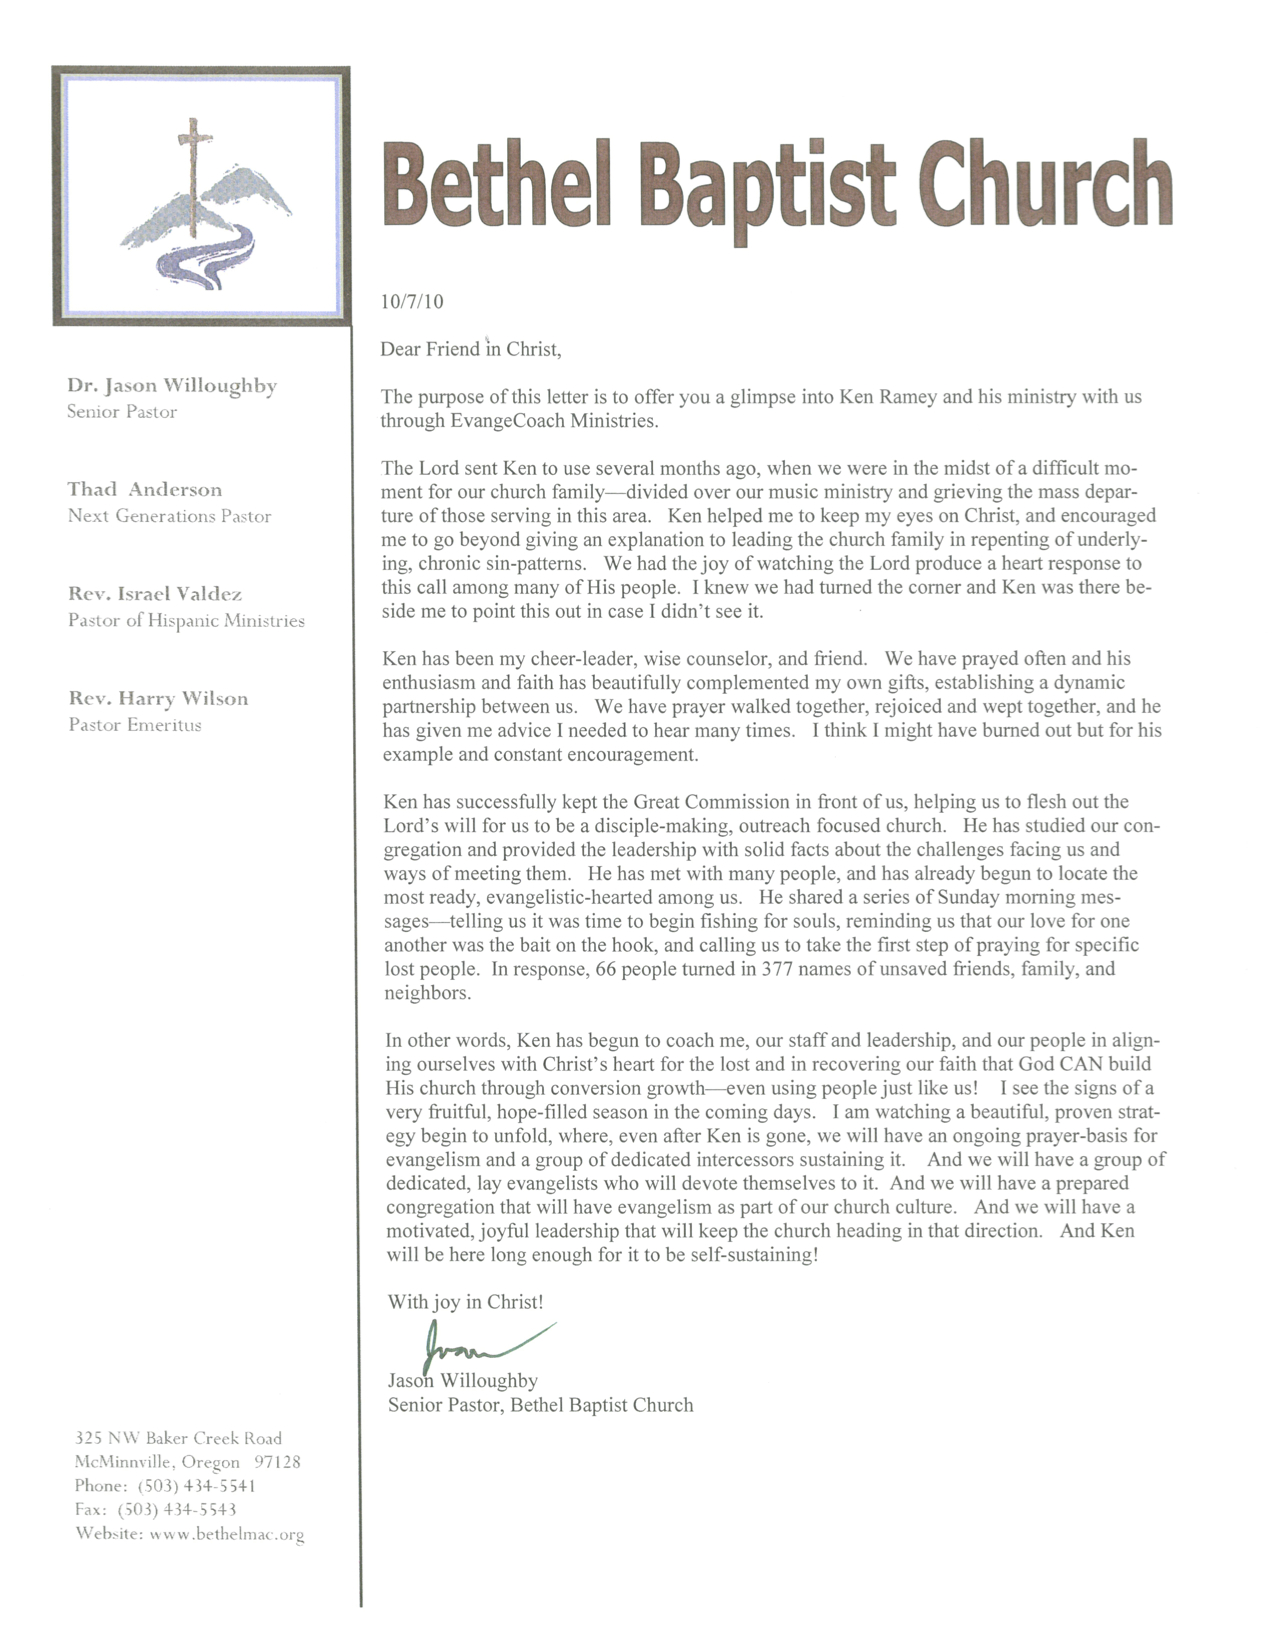 Reference Letters Evangecoach Ministries